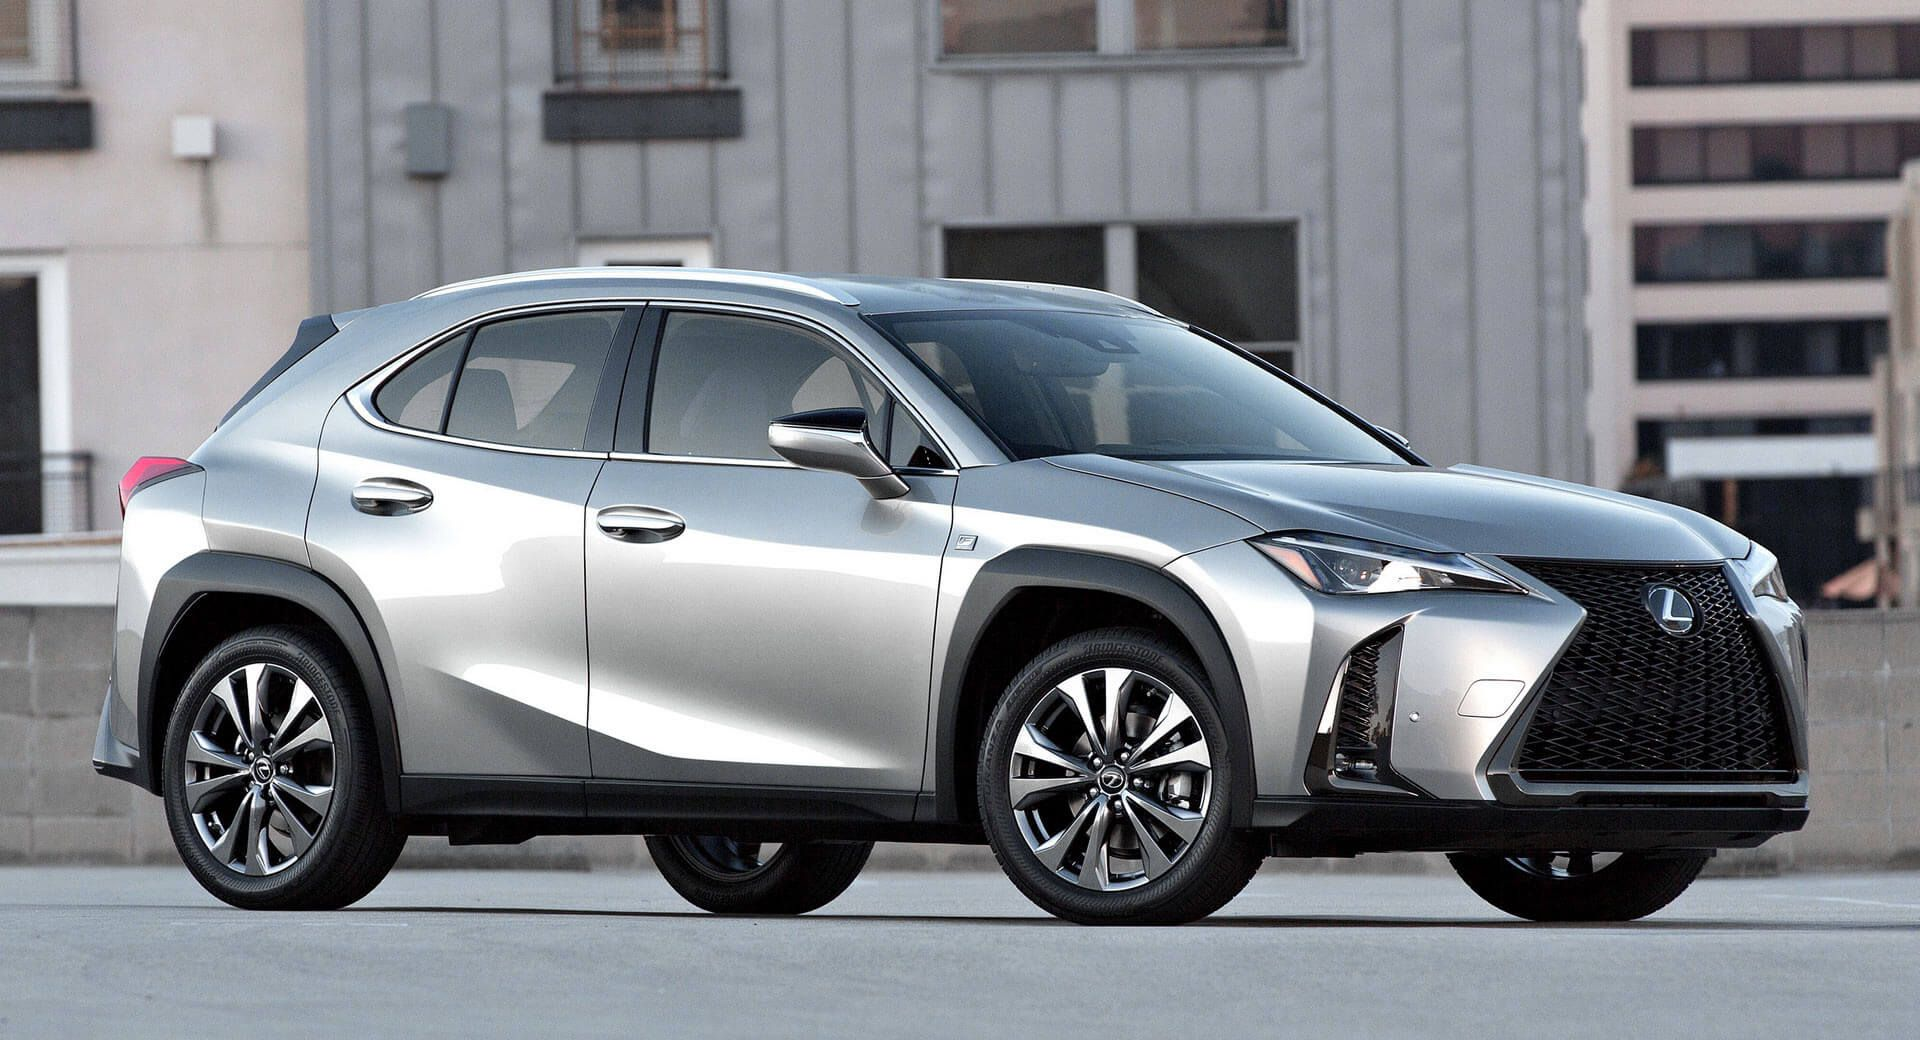 2019 Lexus Ux Small Suv Gets Up To 168hp In U S Available With Subscription Carscoops Lexus Suv Lexus Suv Models Small Suv